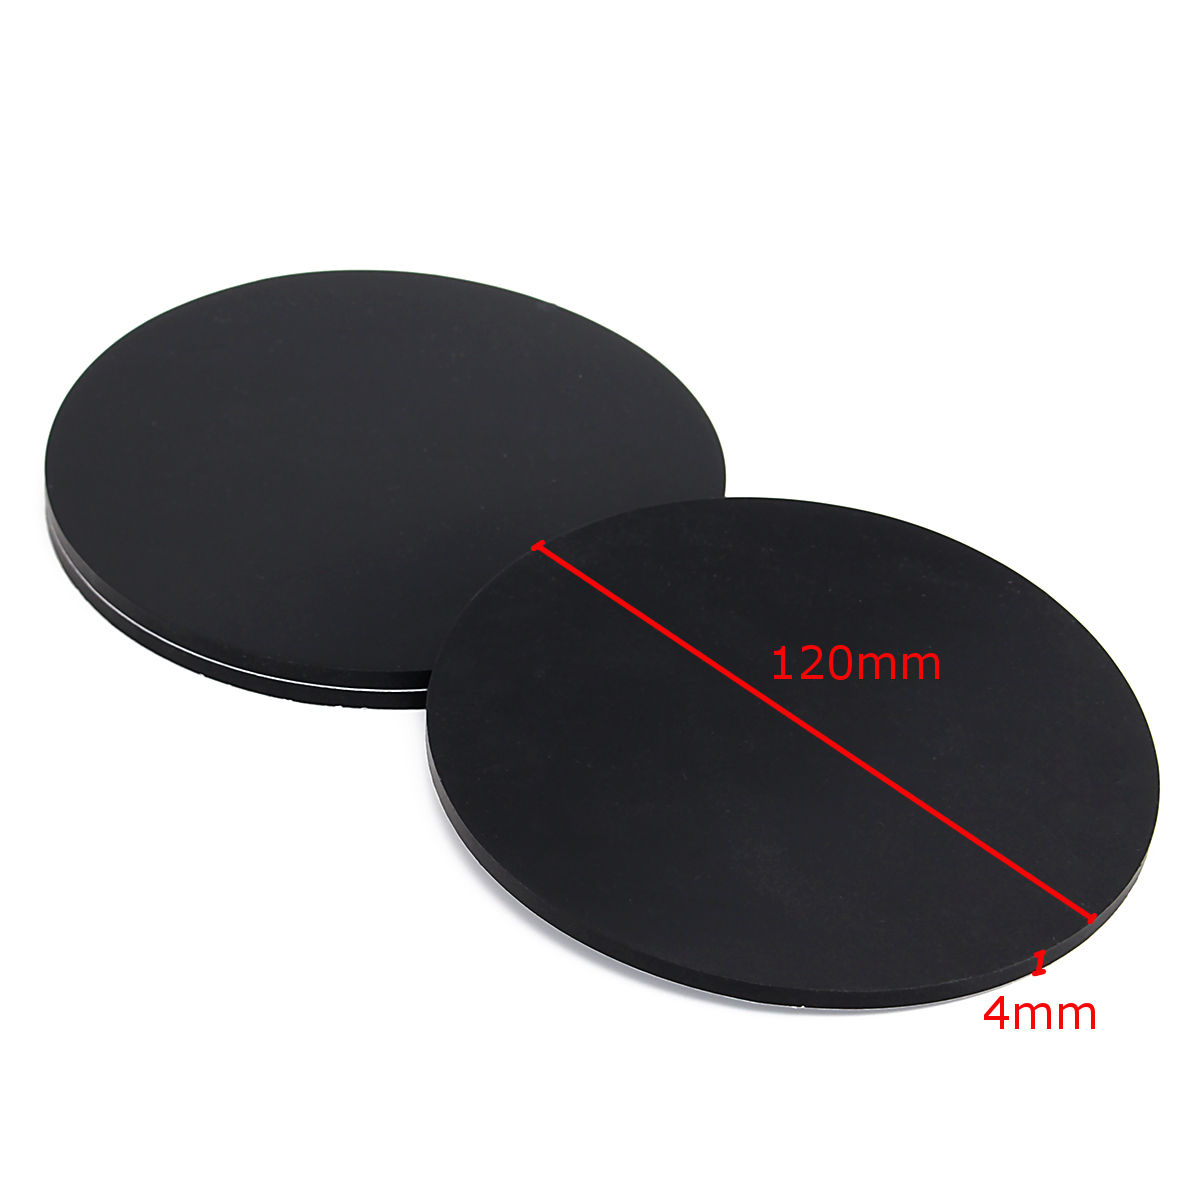 3Pcs 120mm Round Black Silicone Oval Model Bases Support for Wargames Table Games